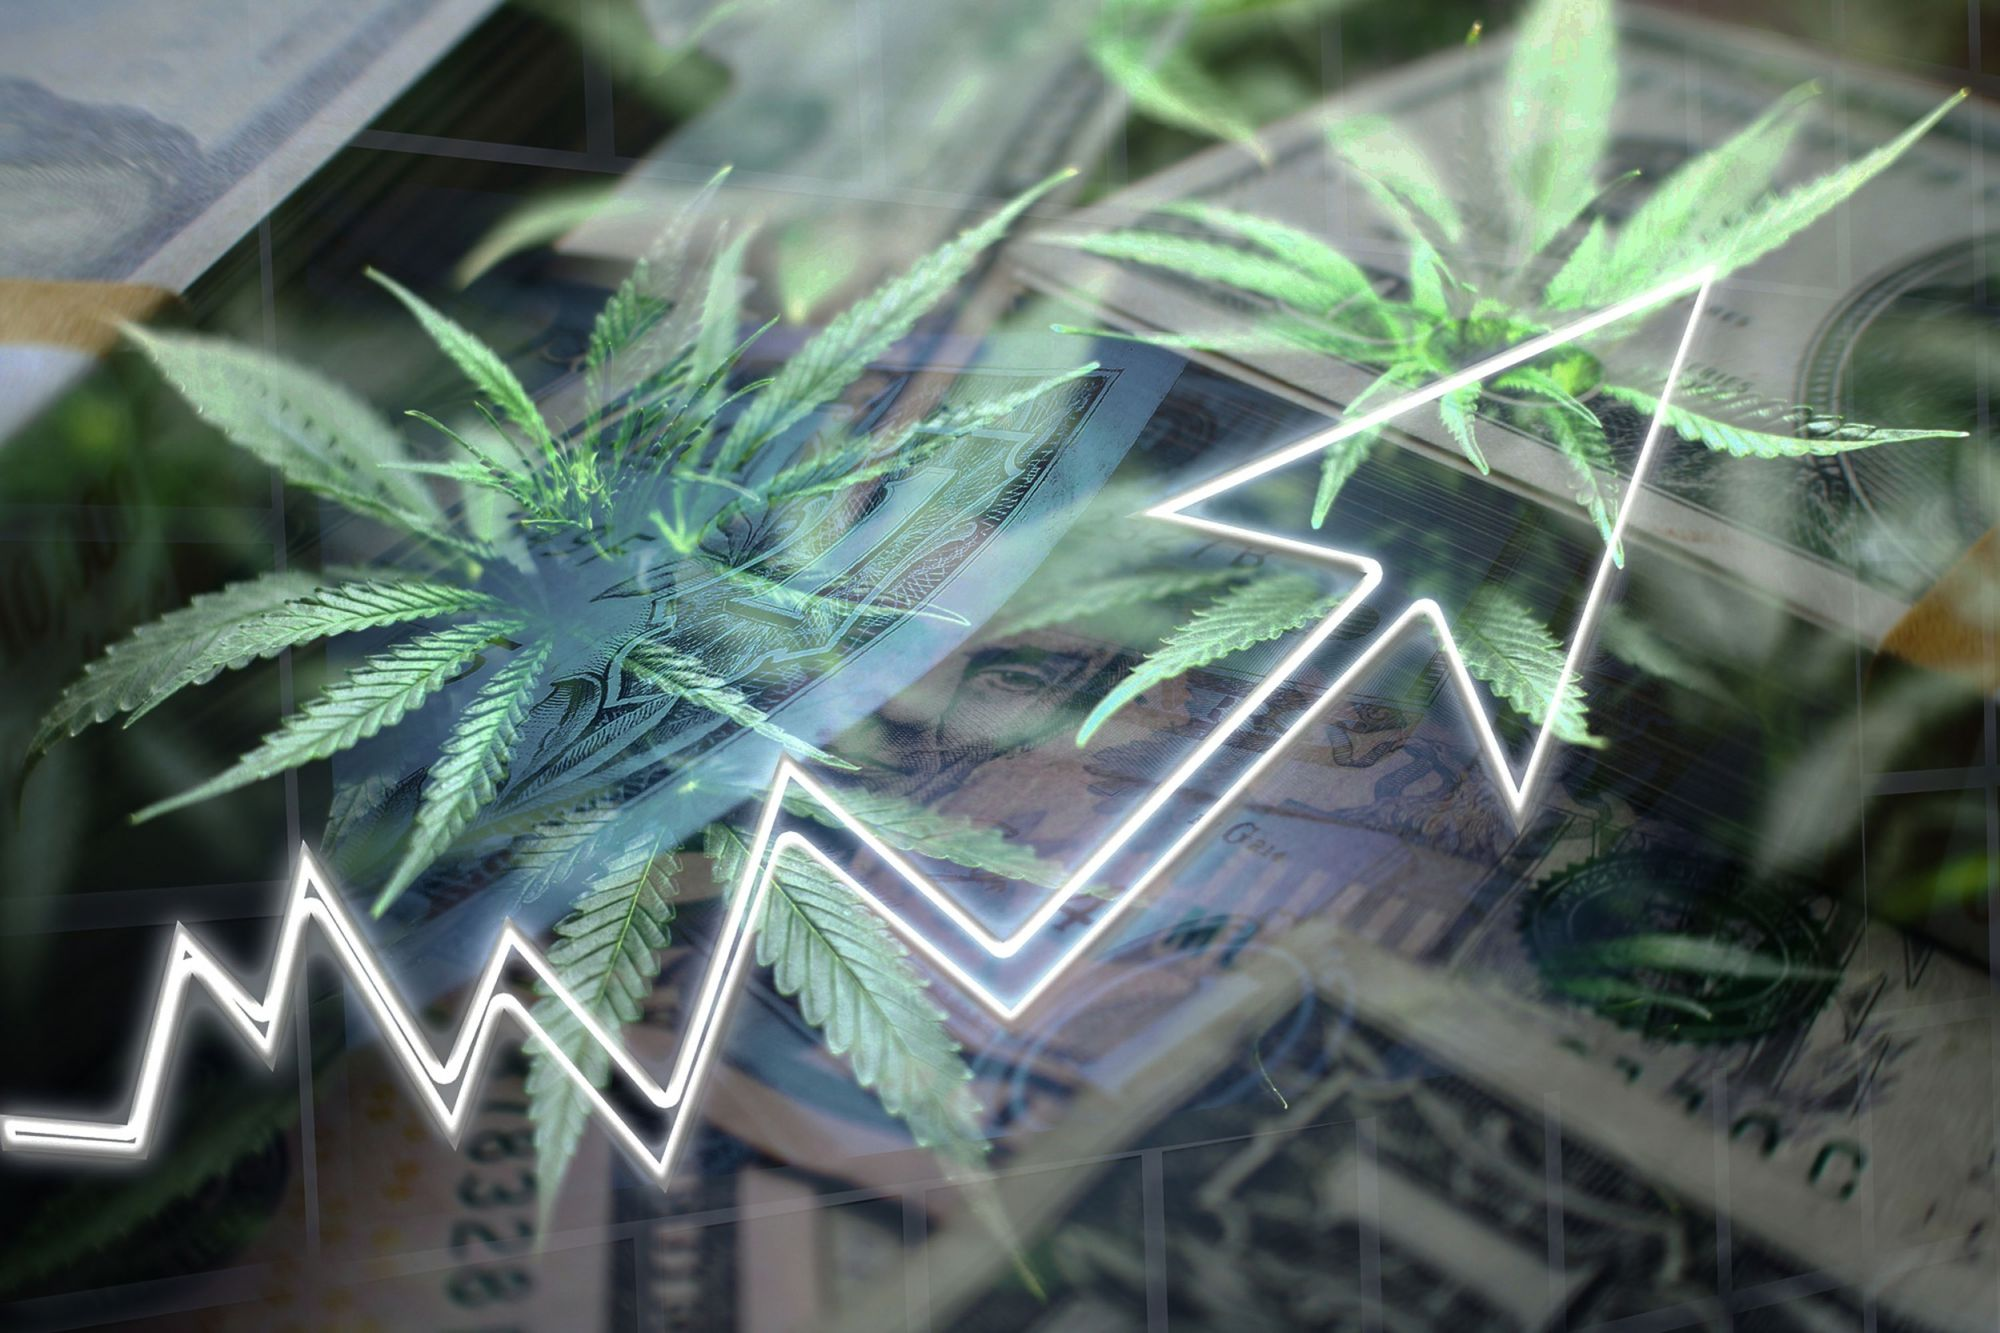 The Budding U.S. Cannabis Industry Needs Normal Access to Business Banking and Insurance